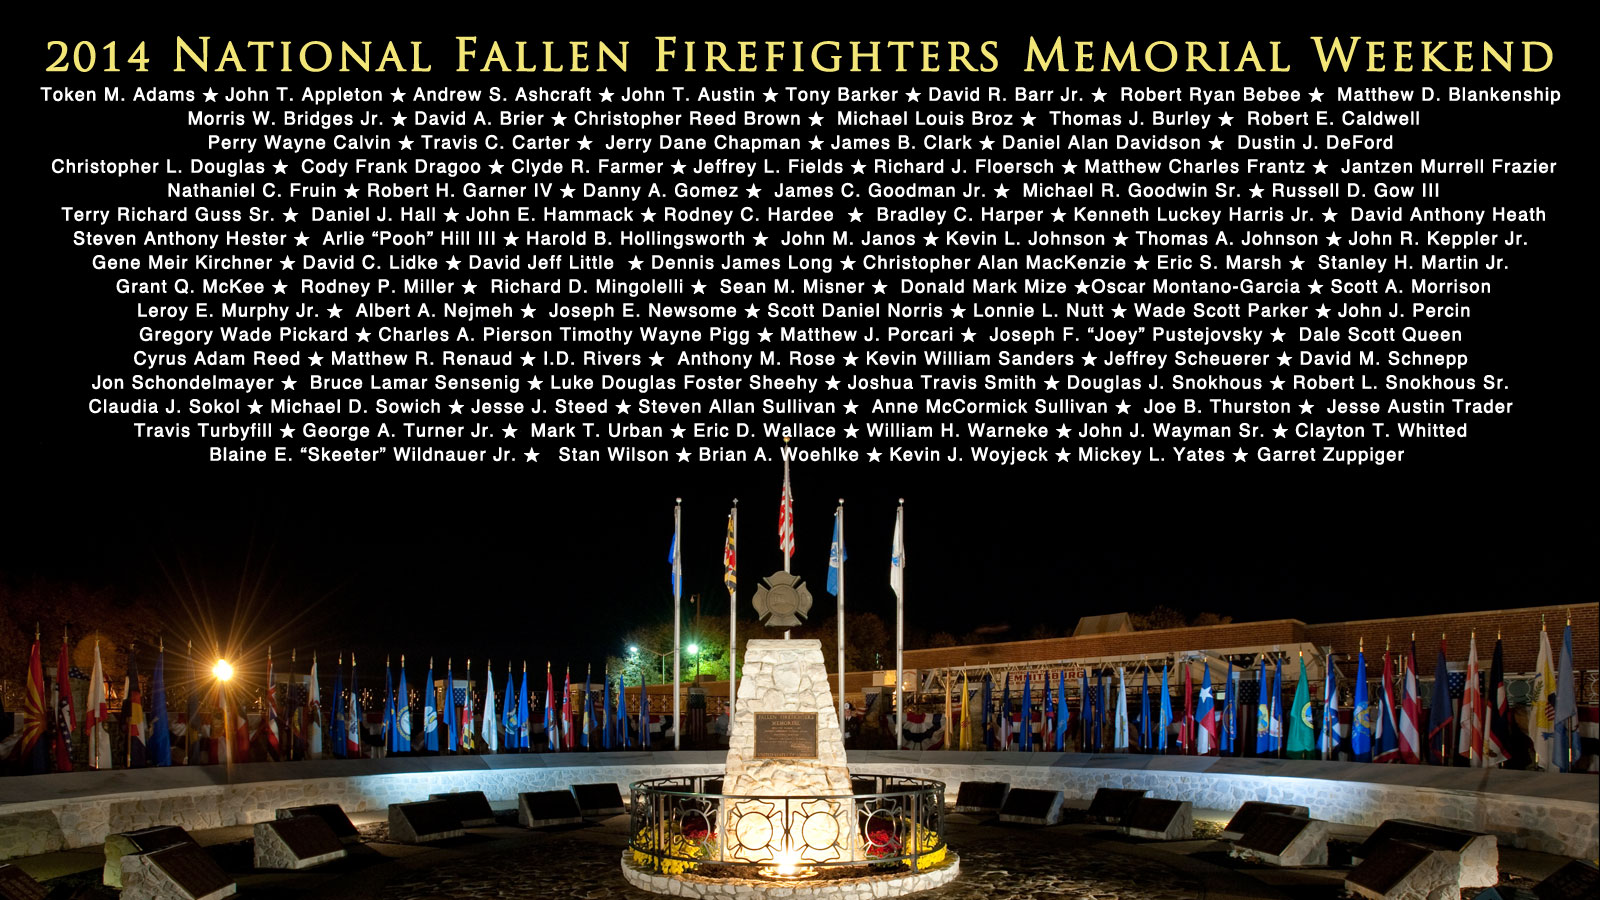 Show Support on Social Media   National Fallen Firefighters Foundation 1600x900